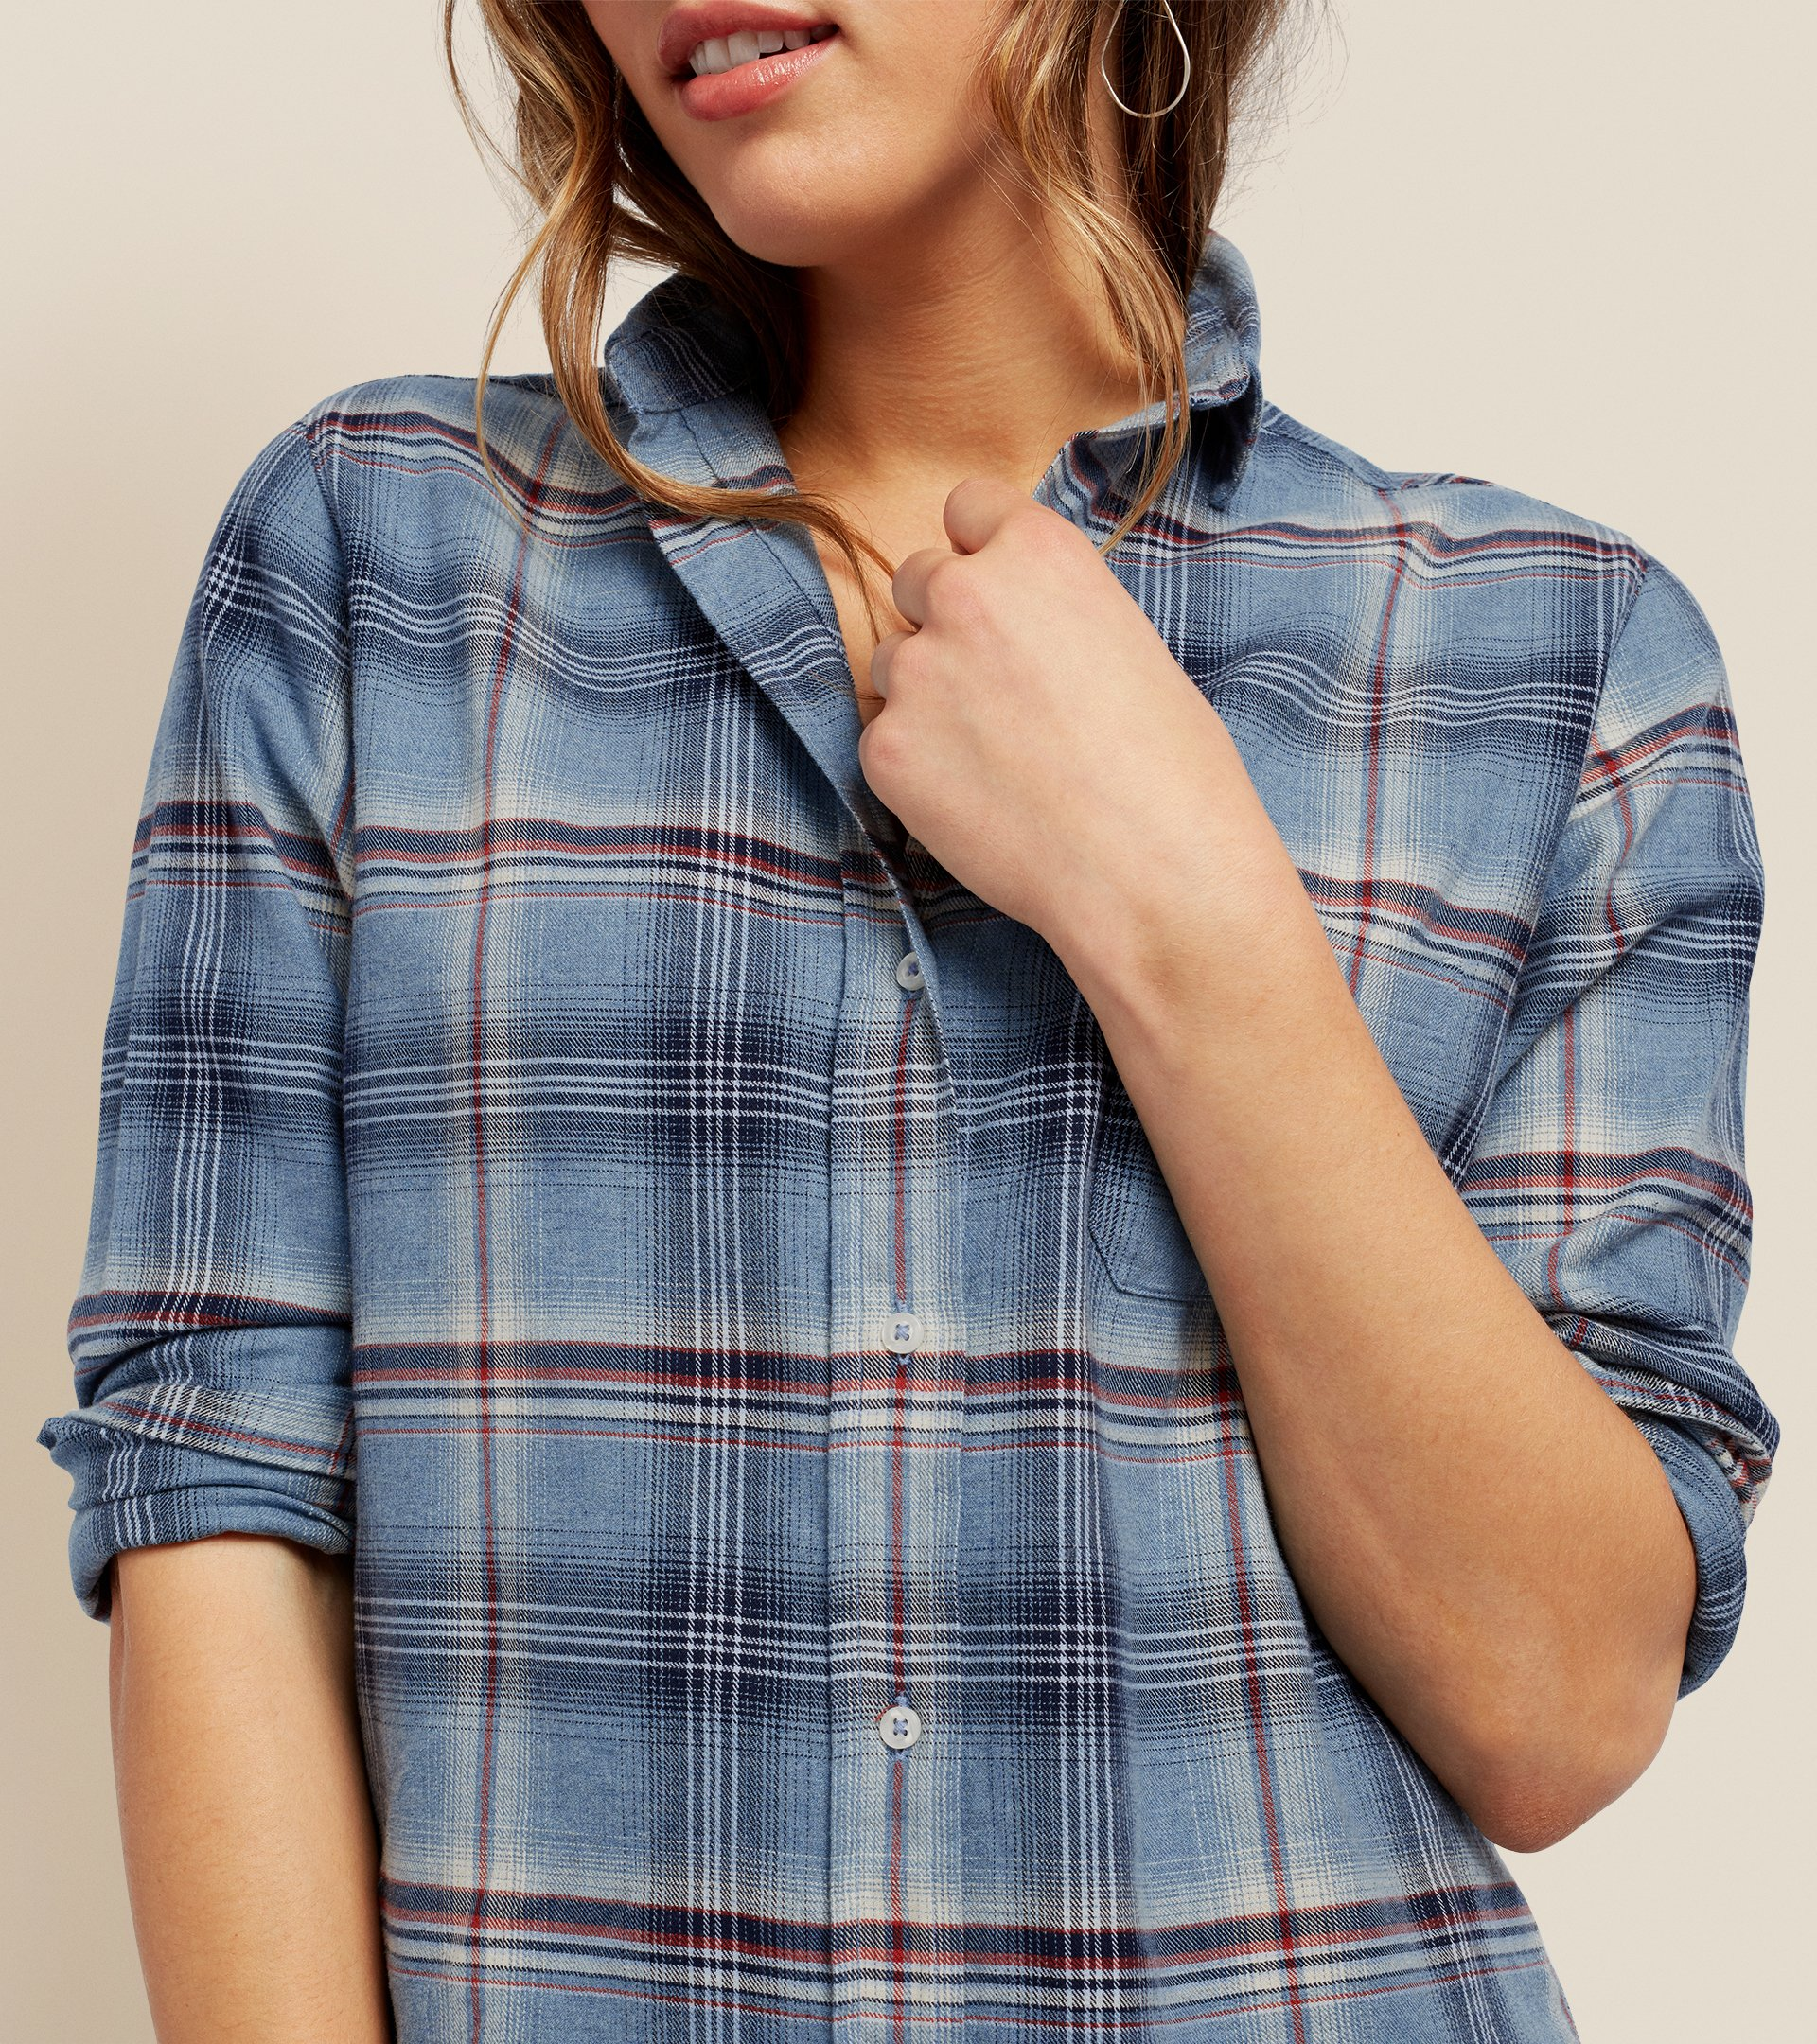 Image of The Hero Indigo Melange with Navy and Red Plaid, Feathered Flannel Sale